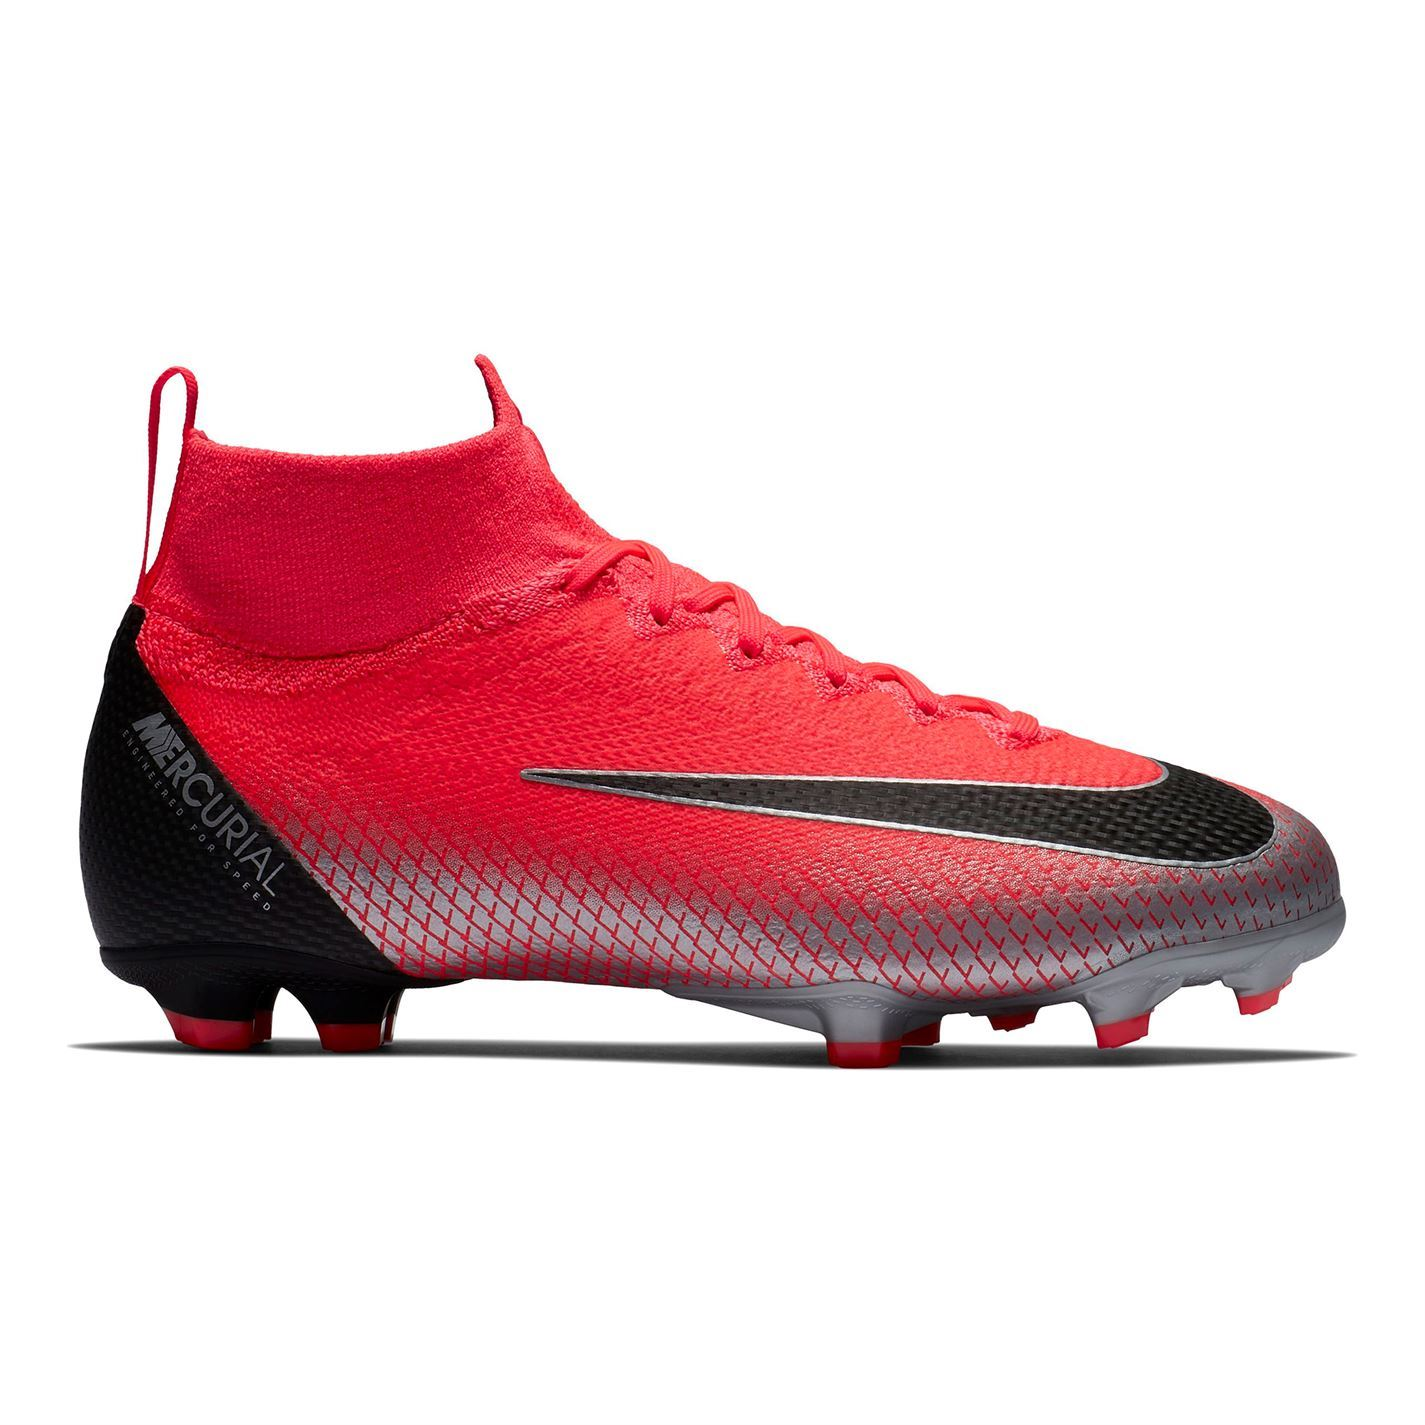 best service 775bd 86c30 Nike-Mercurial-Superfly-Elite-CR7-FG-Football-Boots-